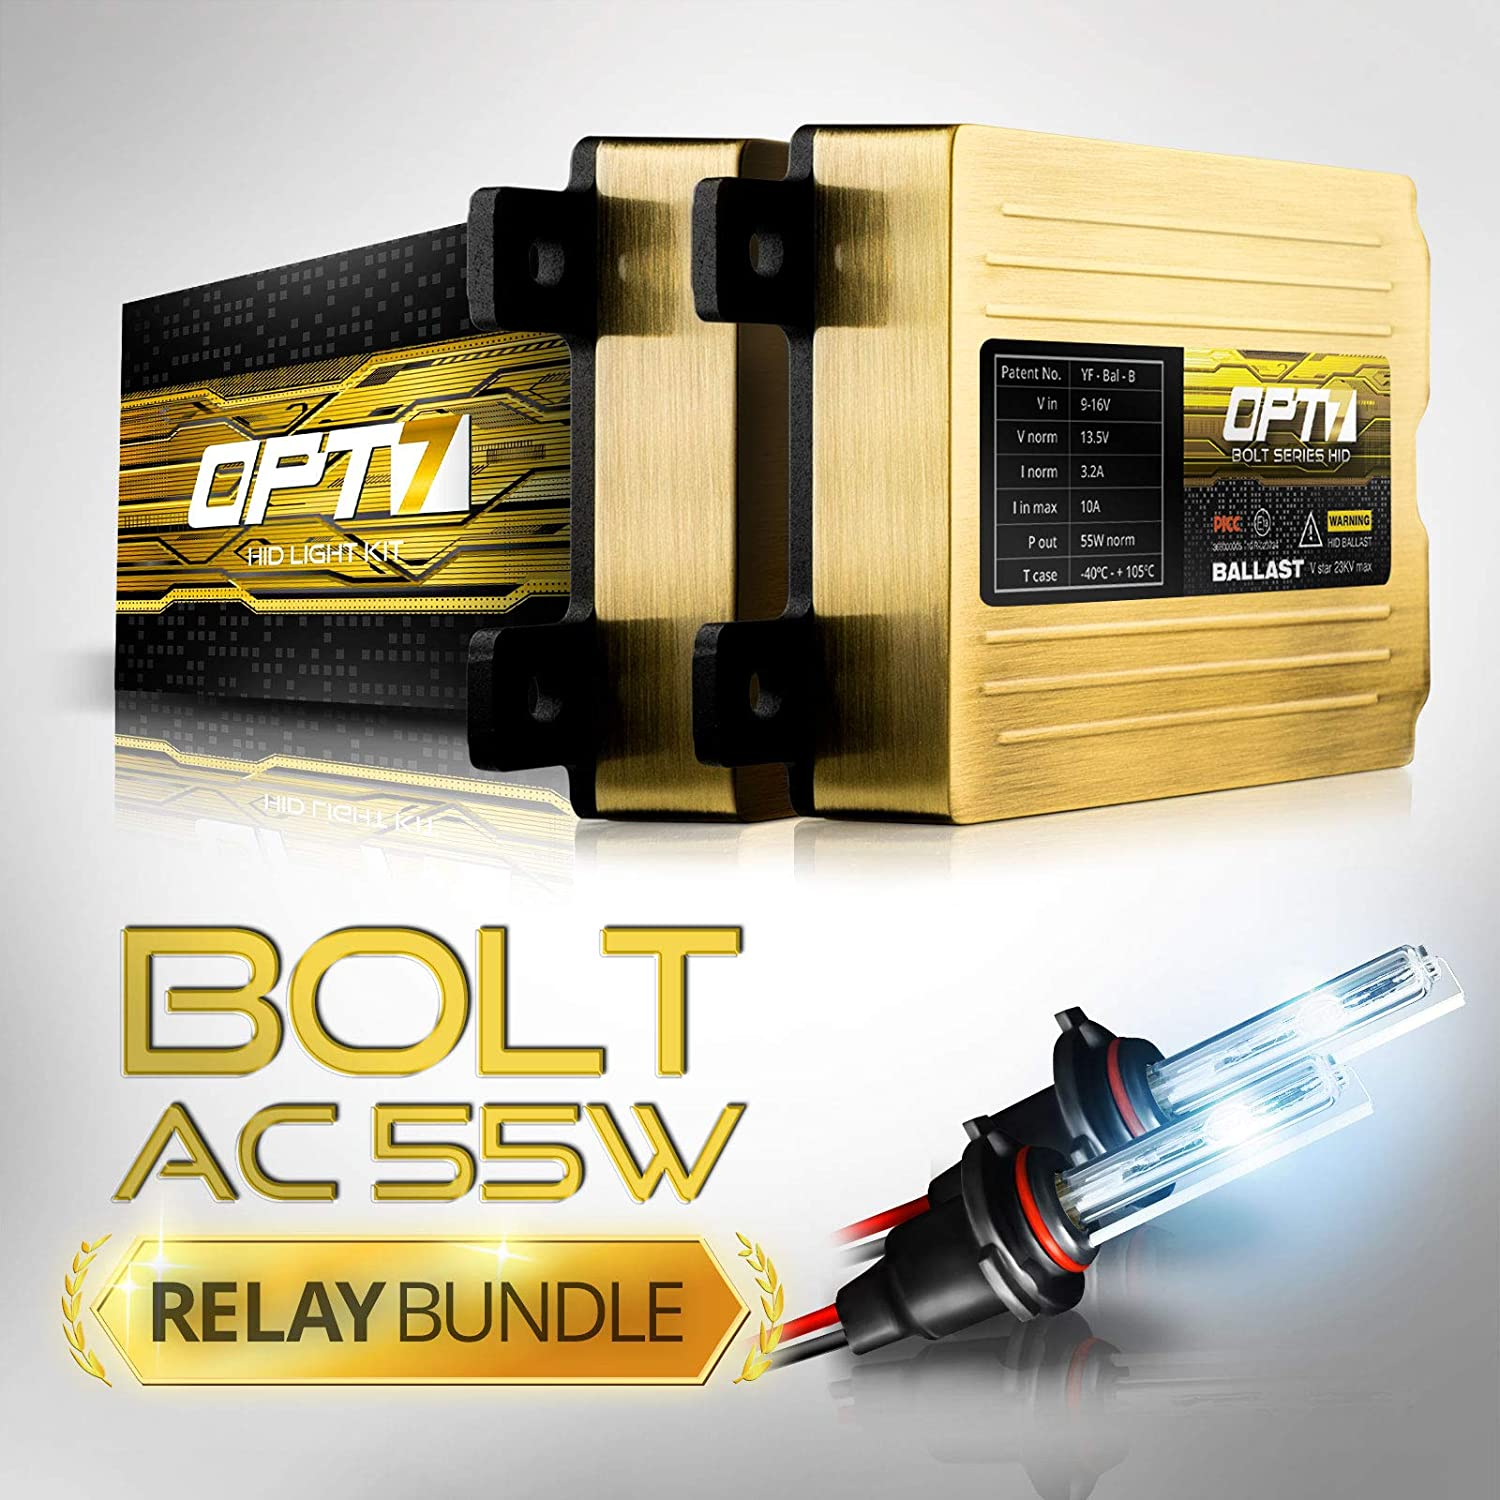 OPT7 Bolt AC 55w Hi-Power H11 (H8, H9) HID Kit - Relay Bundle - All Bulb Sizes and Colors - 2 Yr Warranty [8000K Ice Blue Xenon Light] SPOMHNK1992